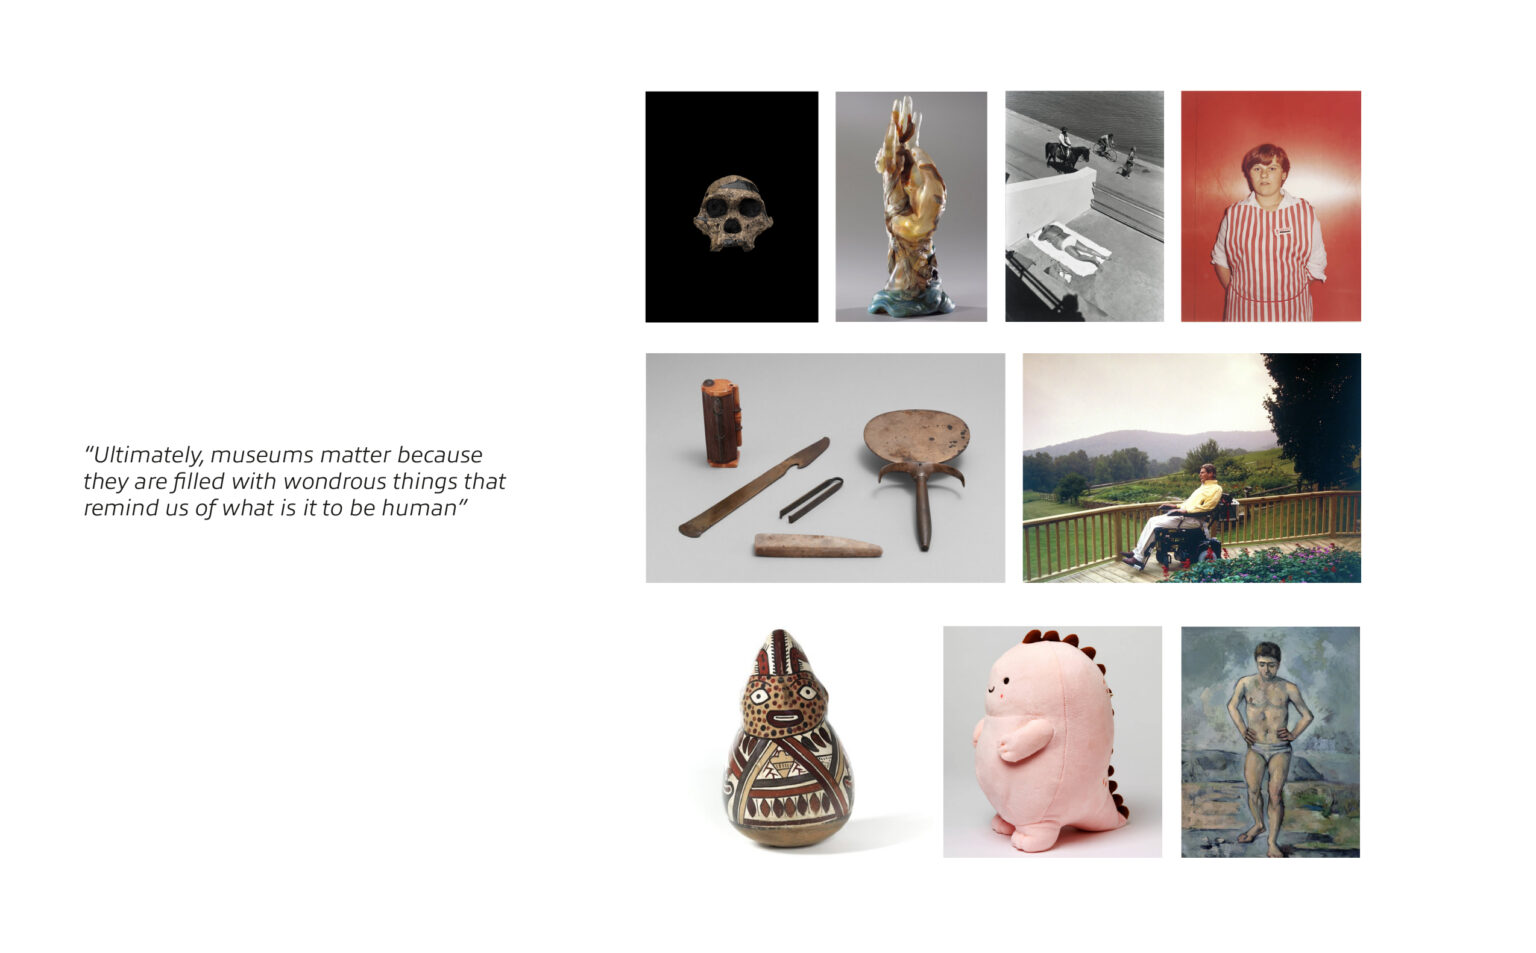 quote and images selected from British museum